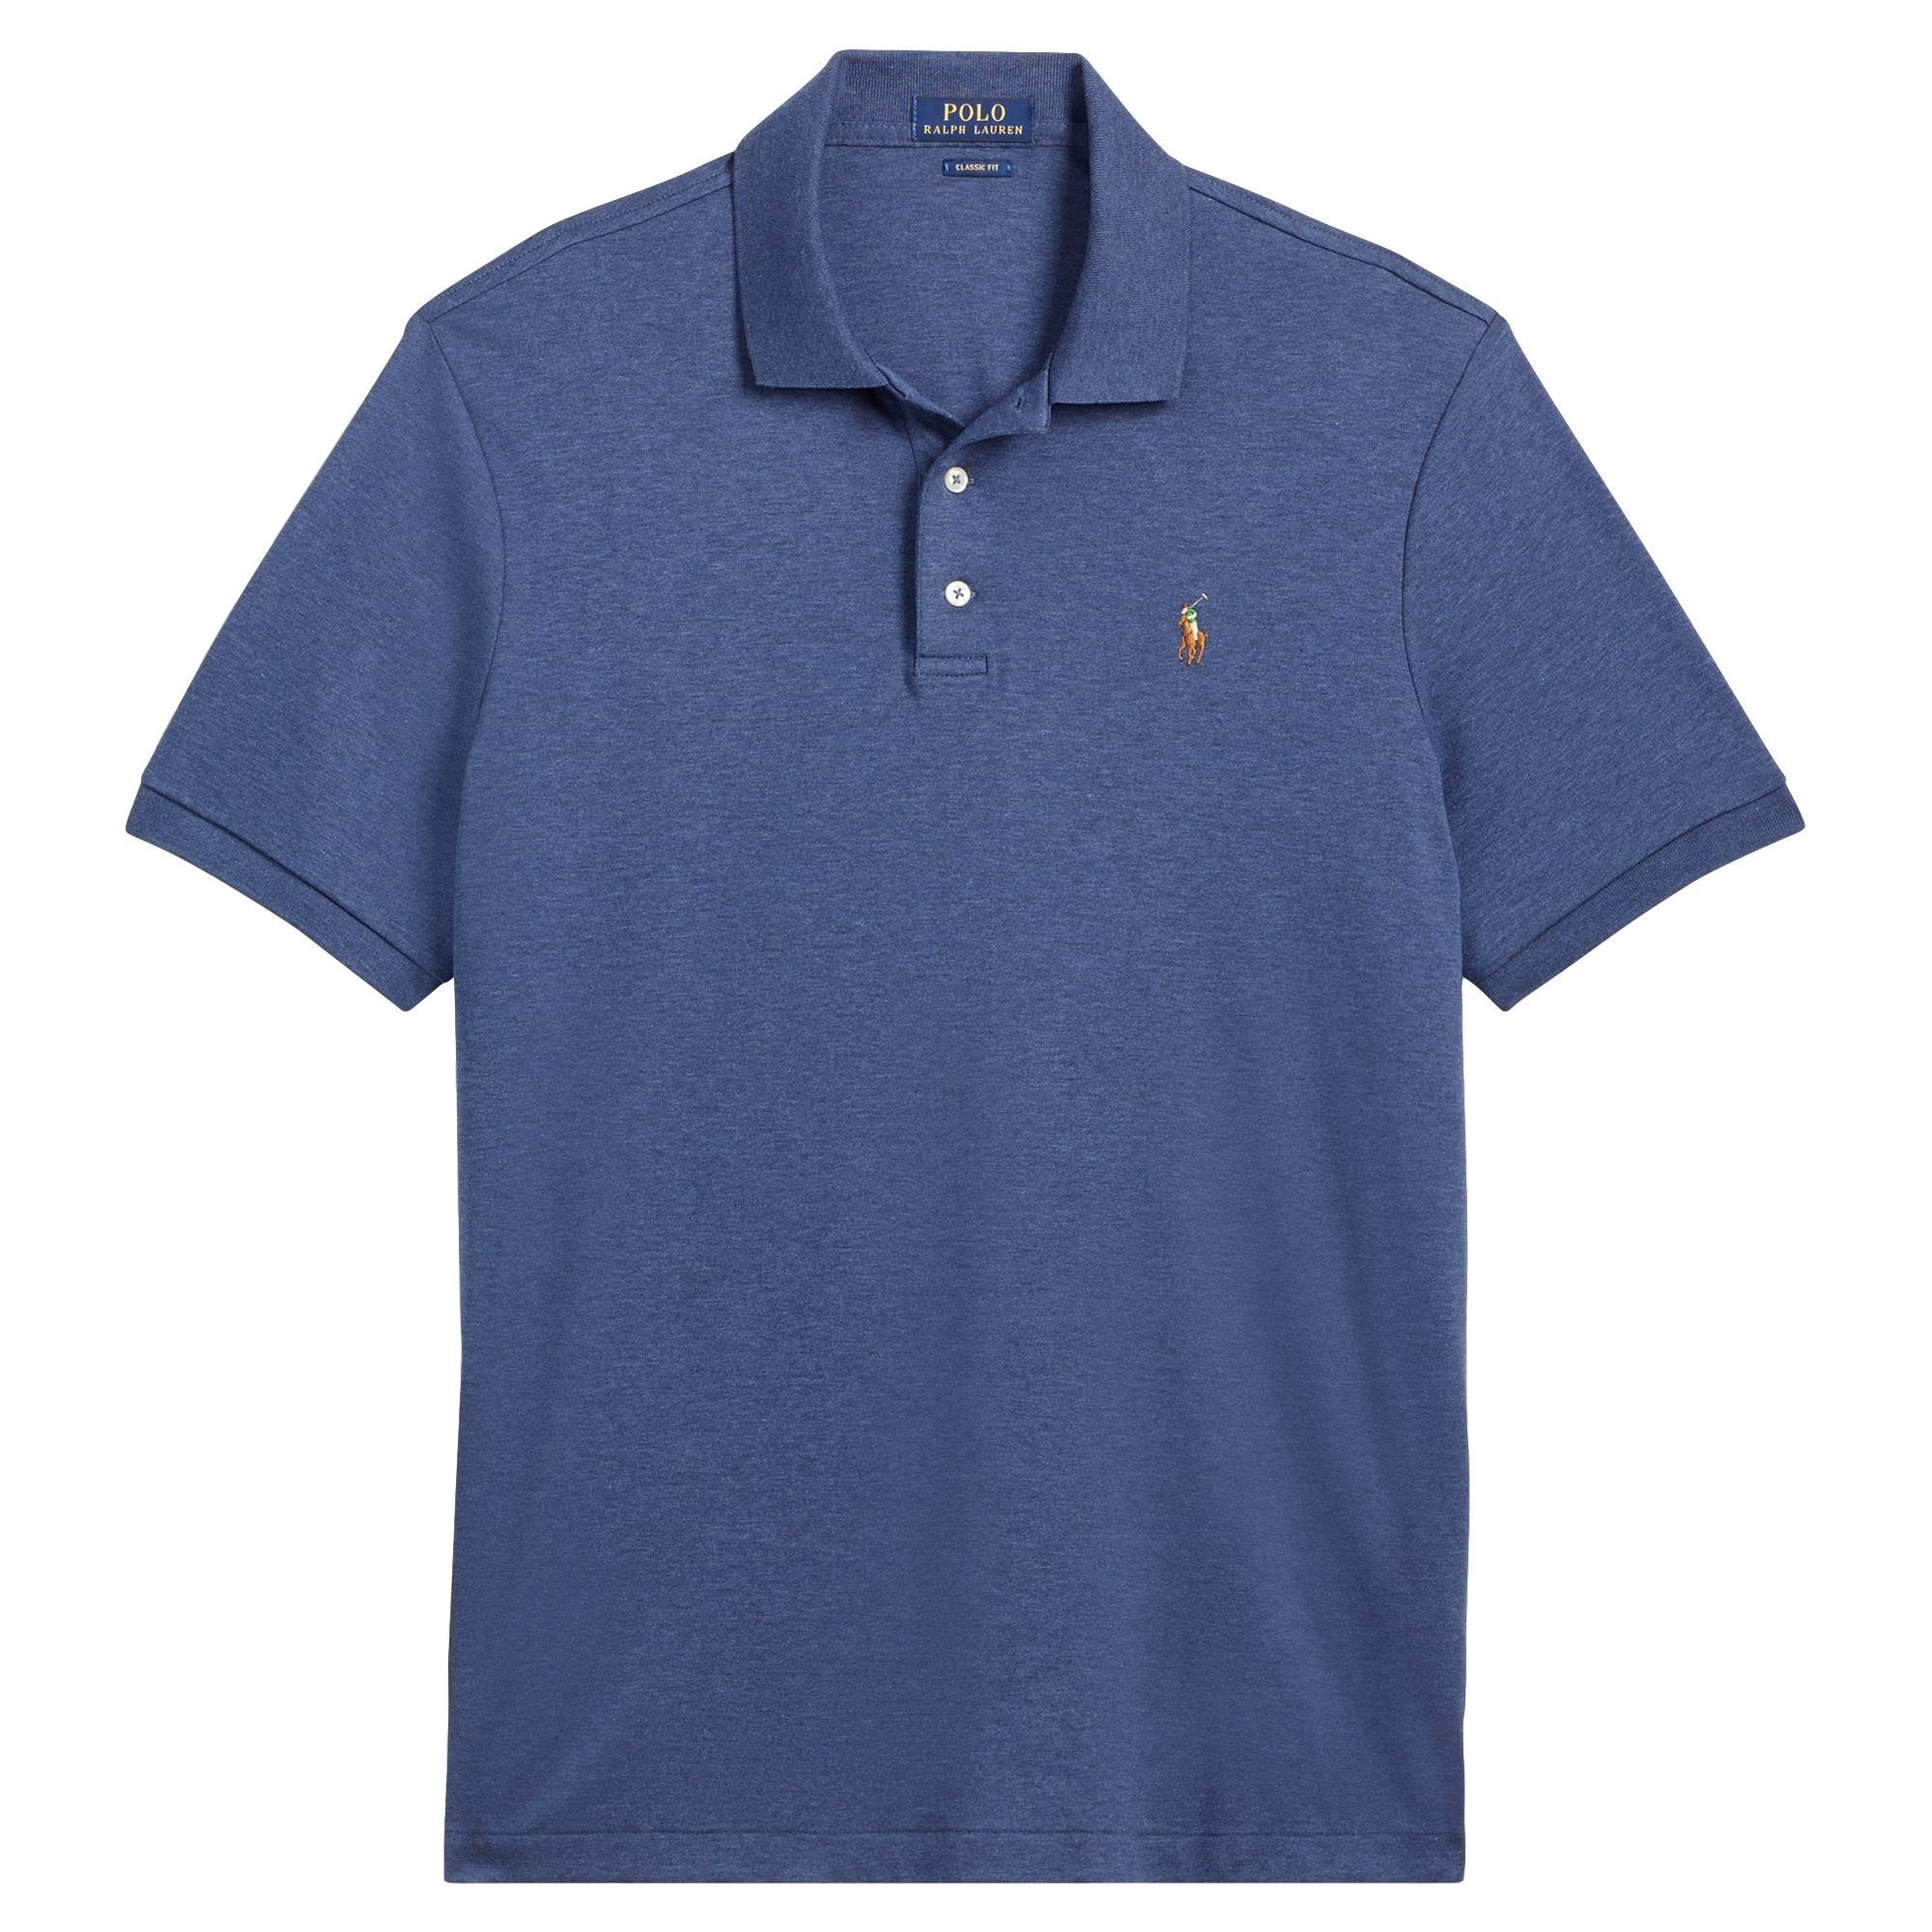 Ralph Lauren Big and Tall Soft-Touch Pima Cotton Polo Shirt Classic-Fit (3XLT, Rustic Navy Heather)